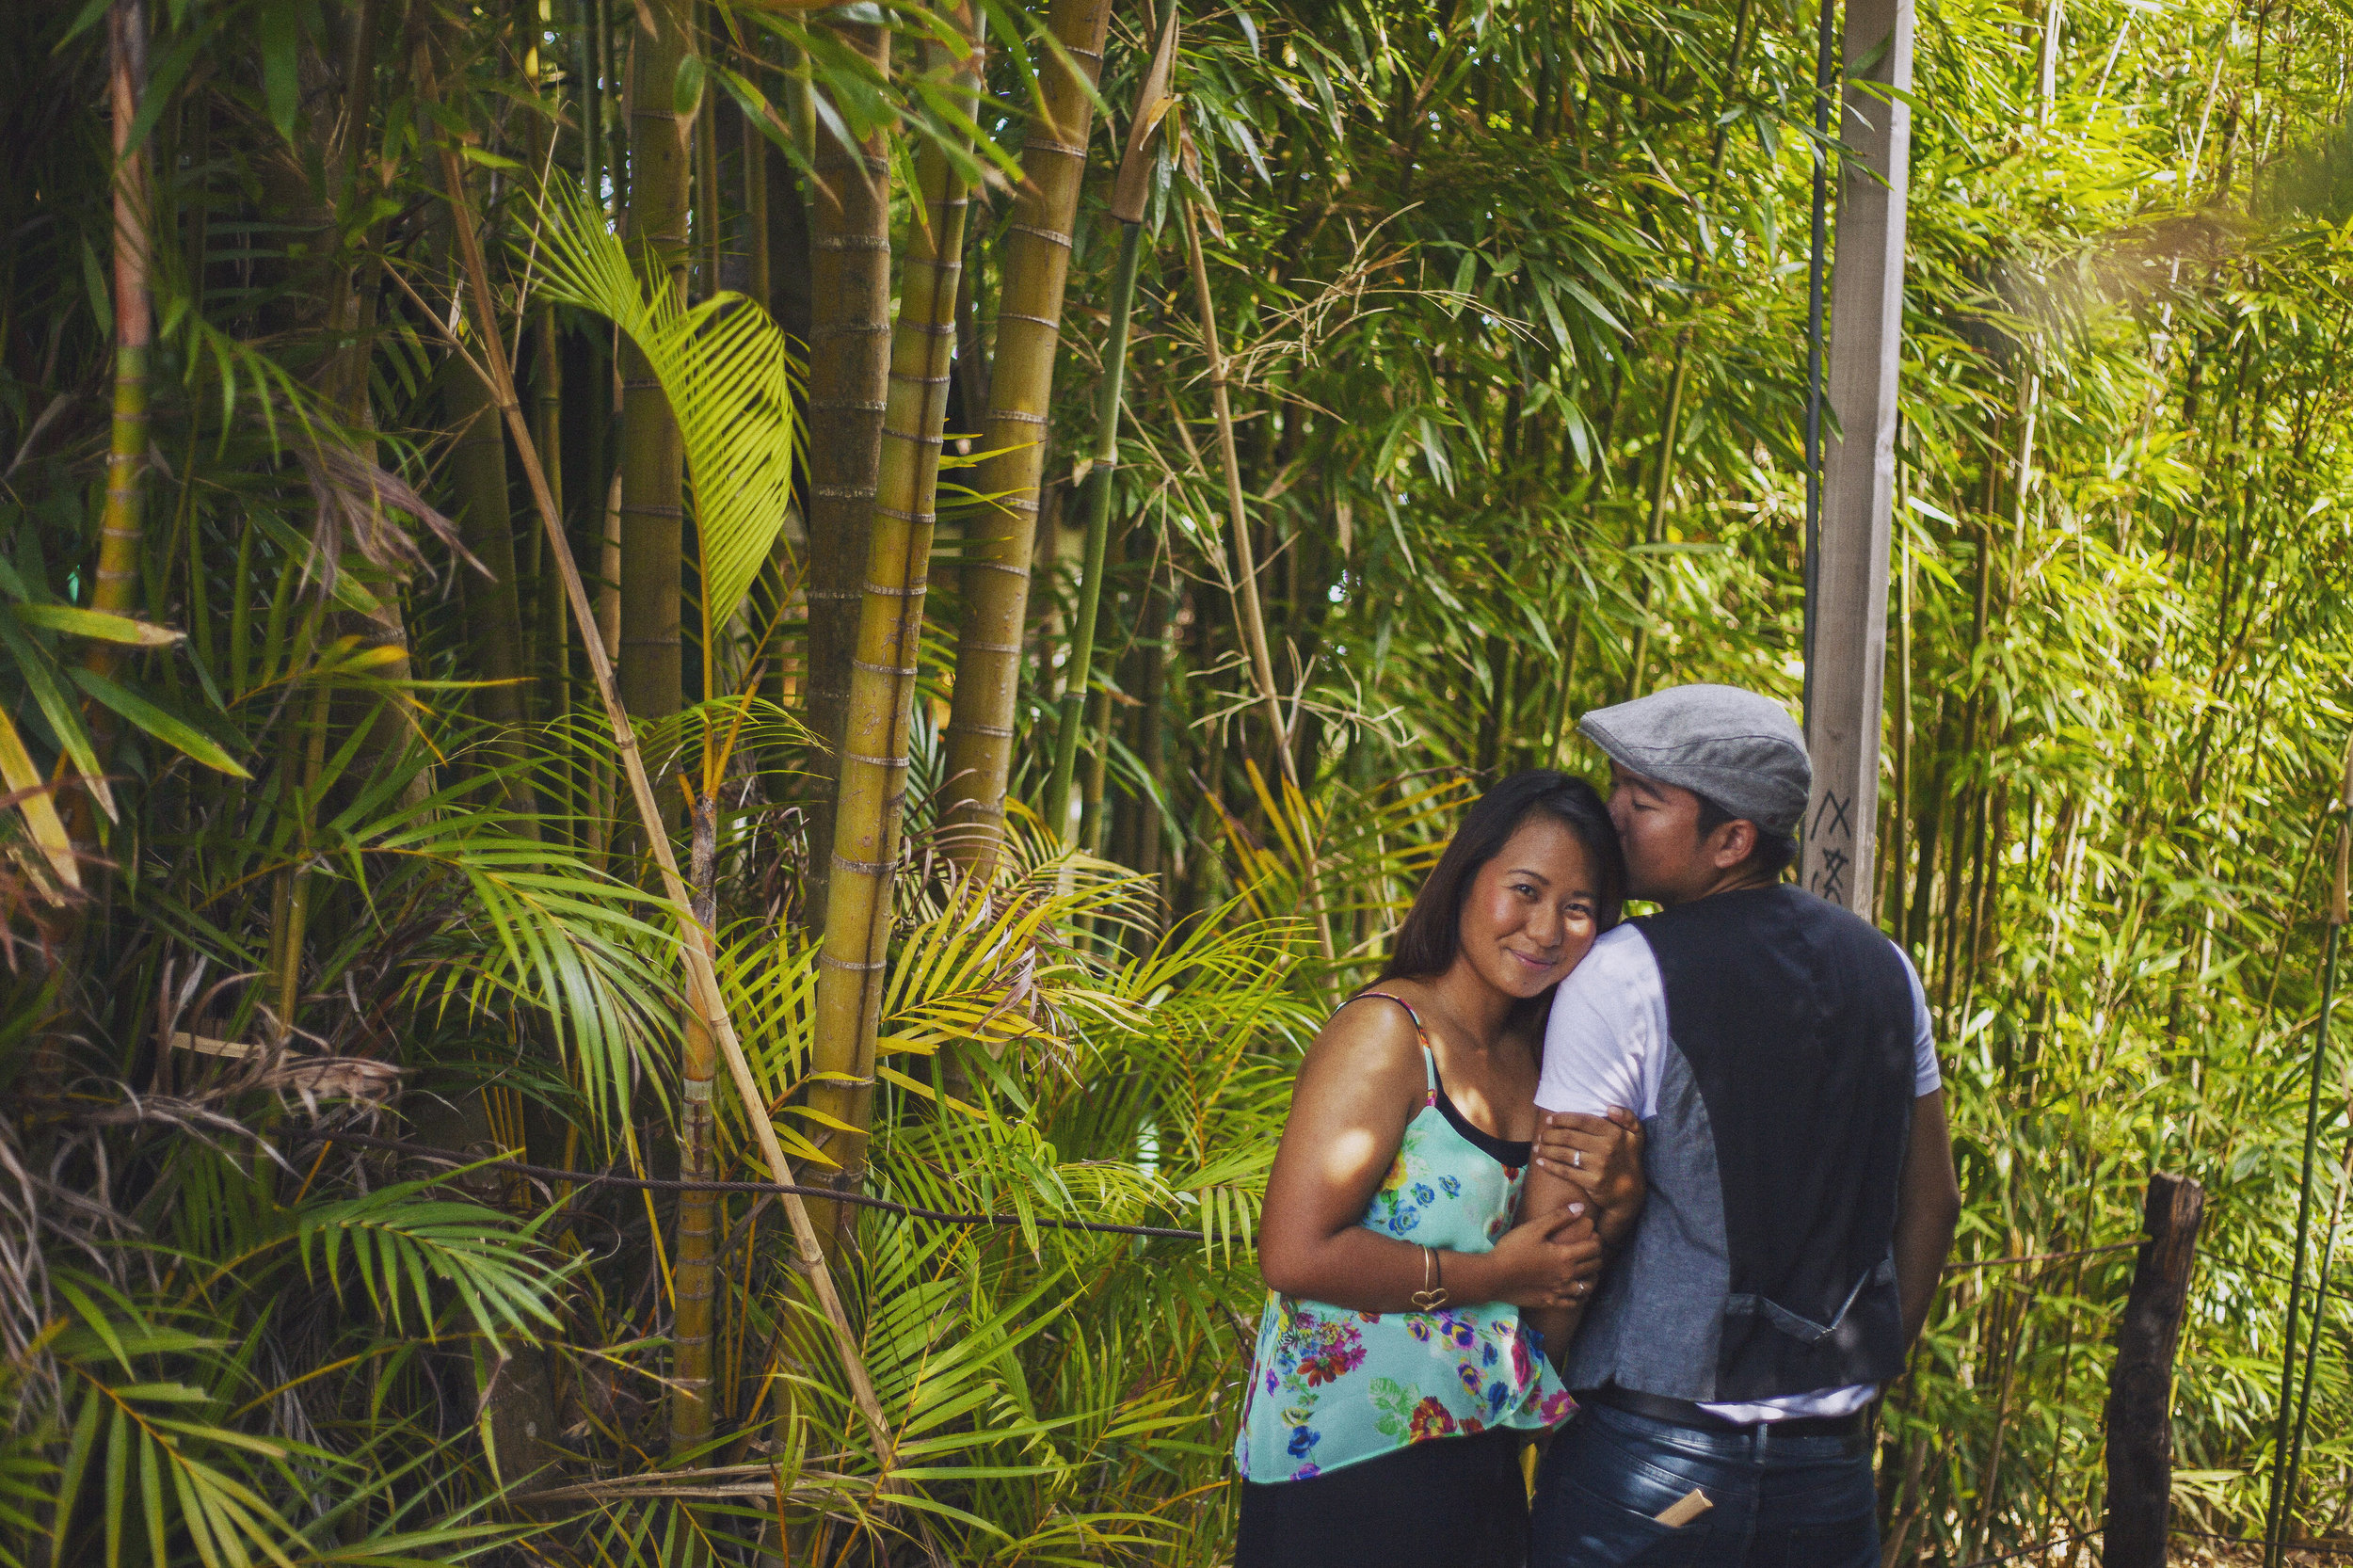 angie-diaz-photography-maui-upcountry-engagement-17.jpg